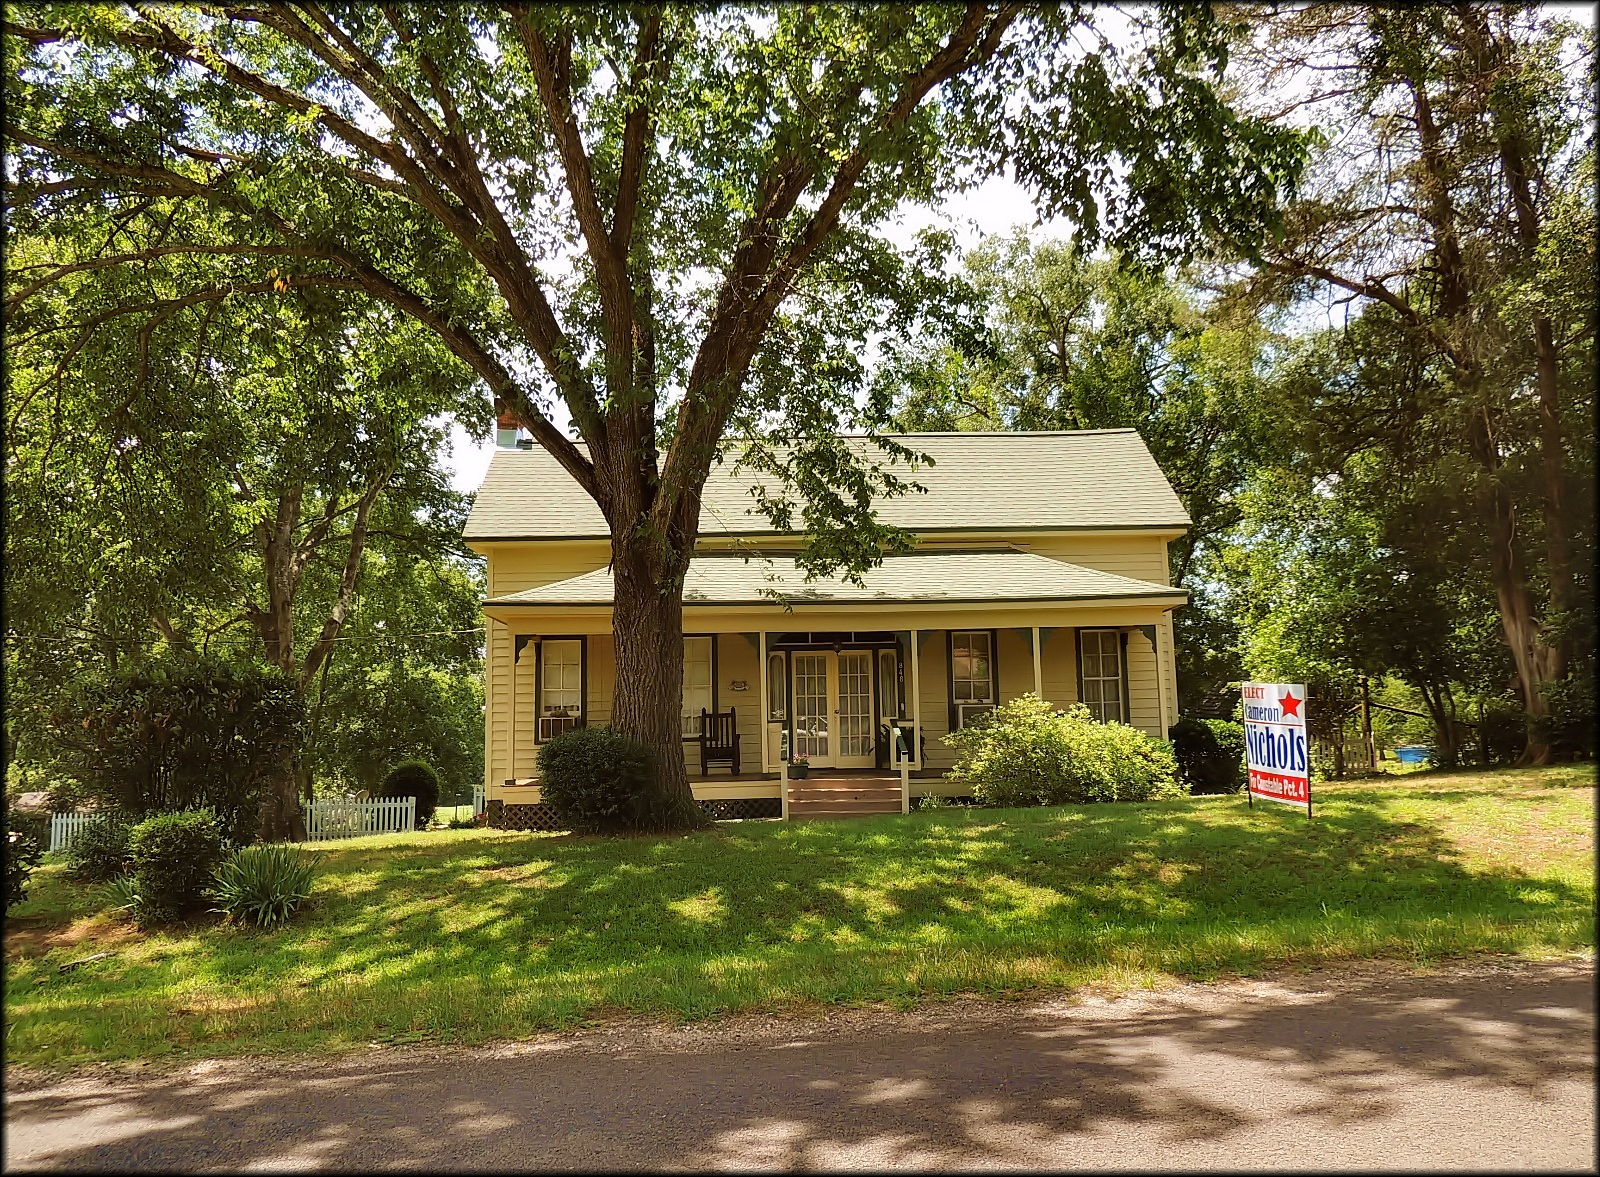 A Quaint Old Victorian Home On Texas Farm Road 95 At